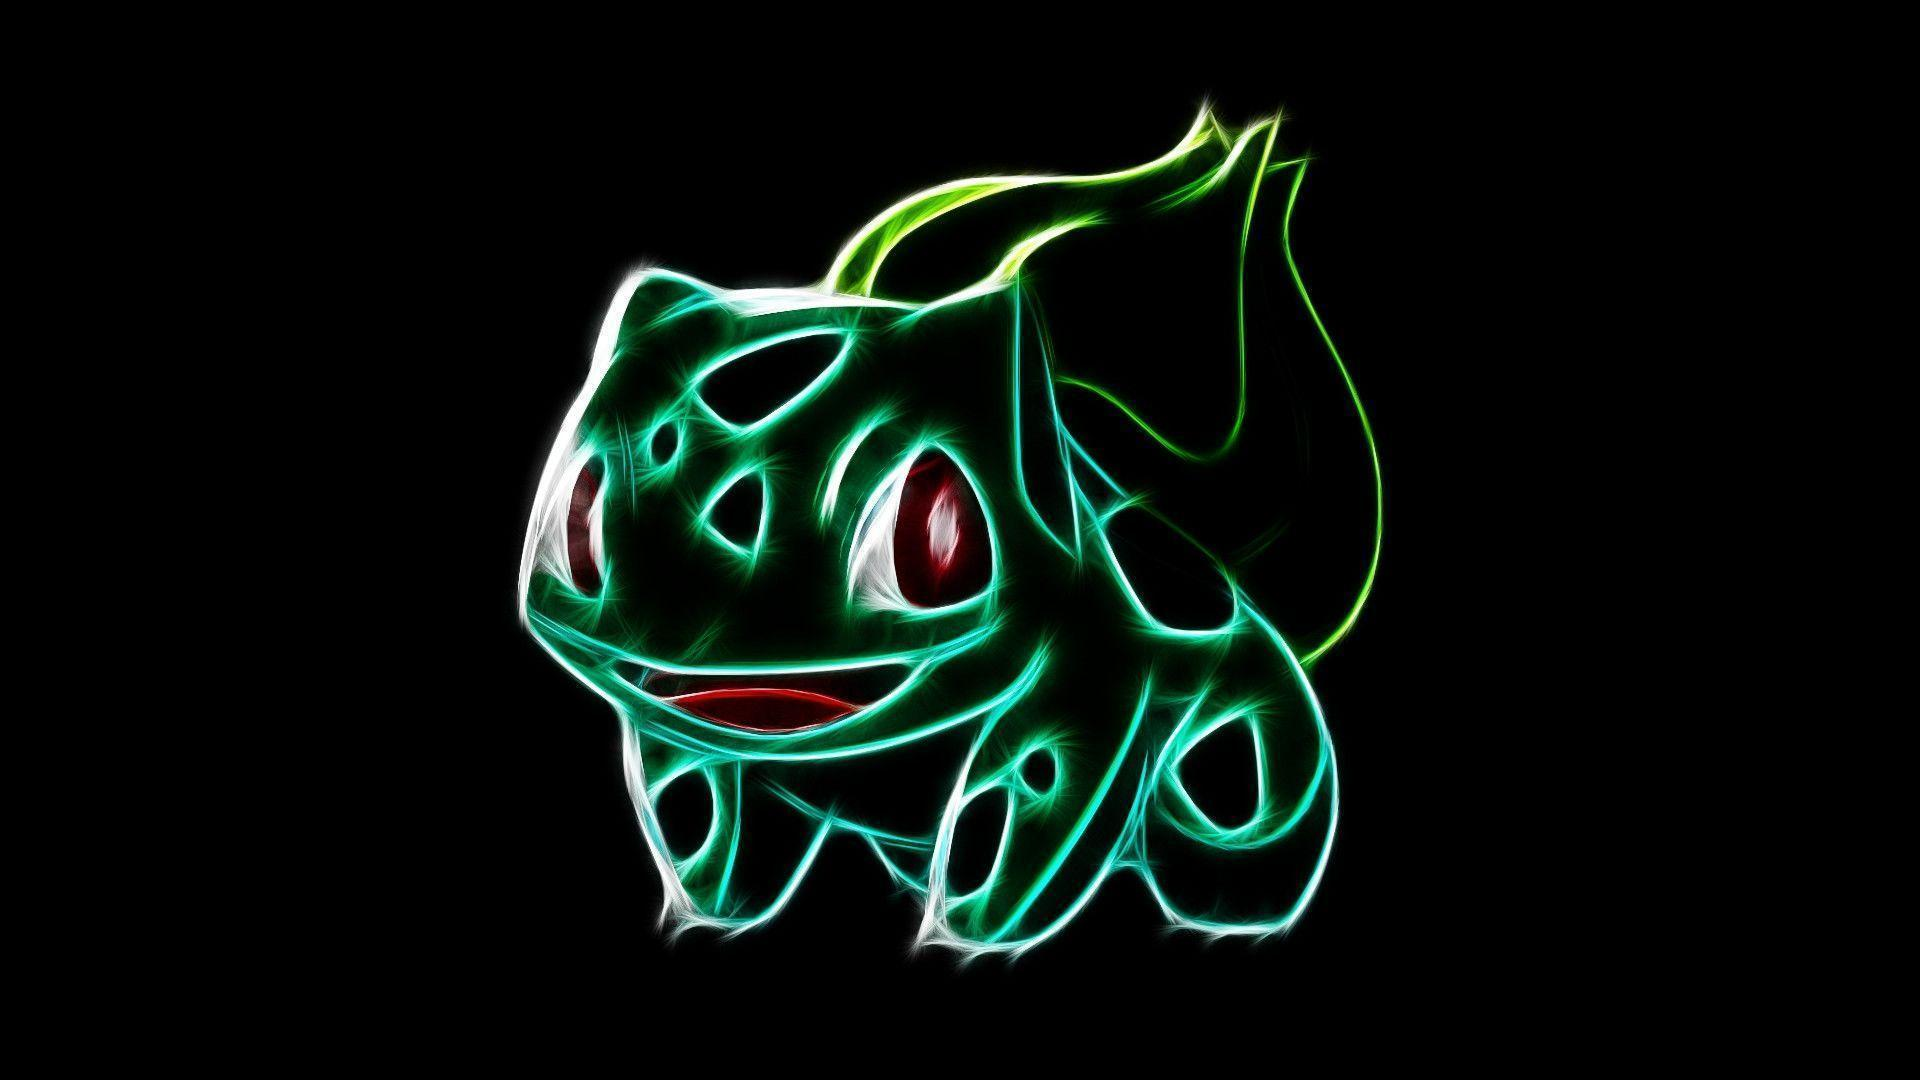 bulbasaur evolution wallpaper images - photo #33